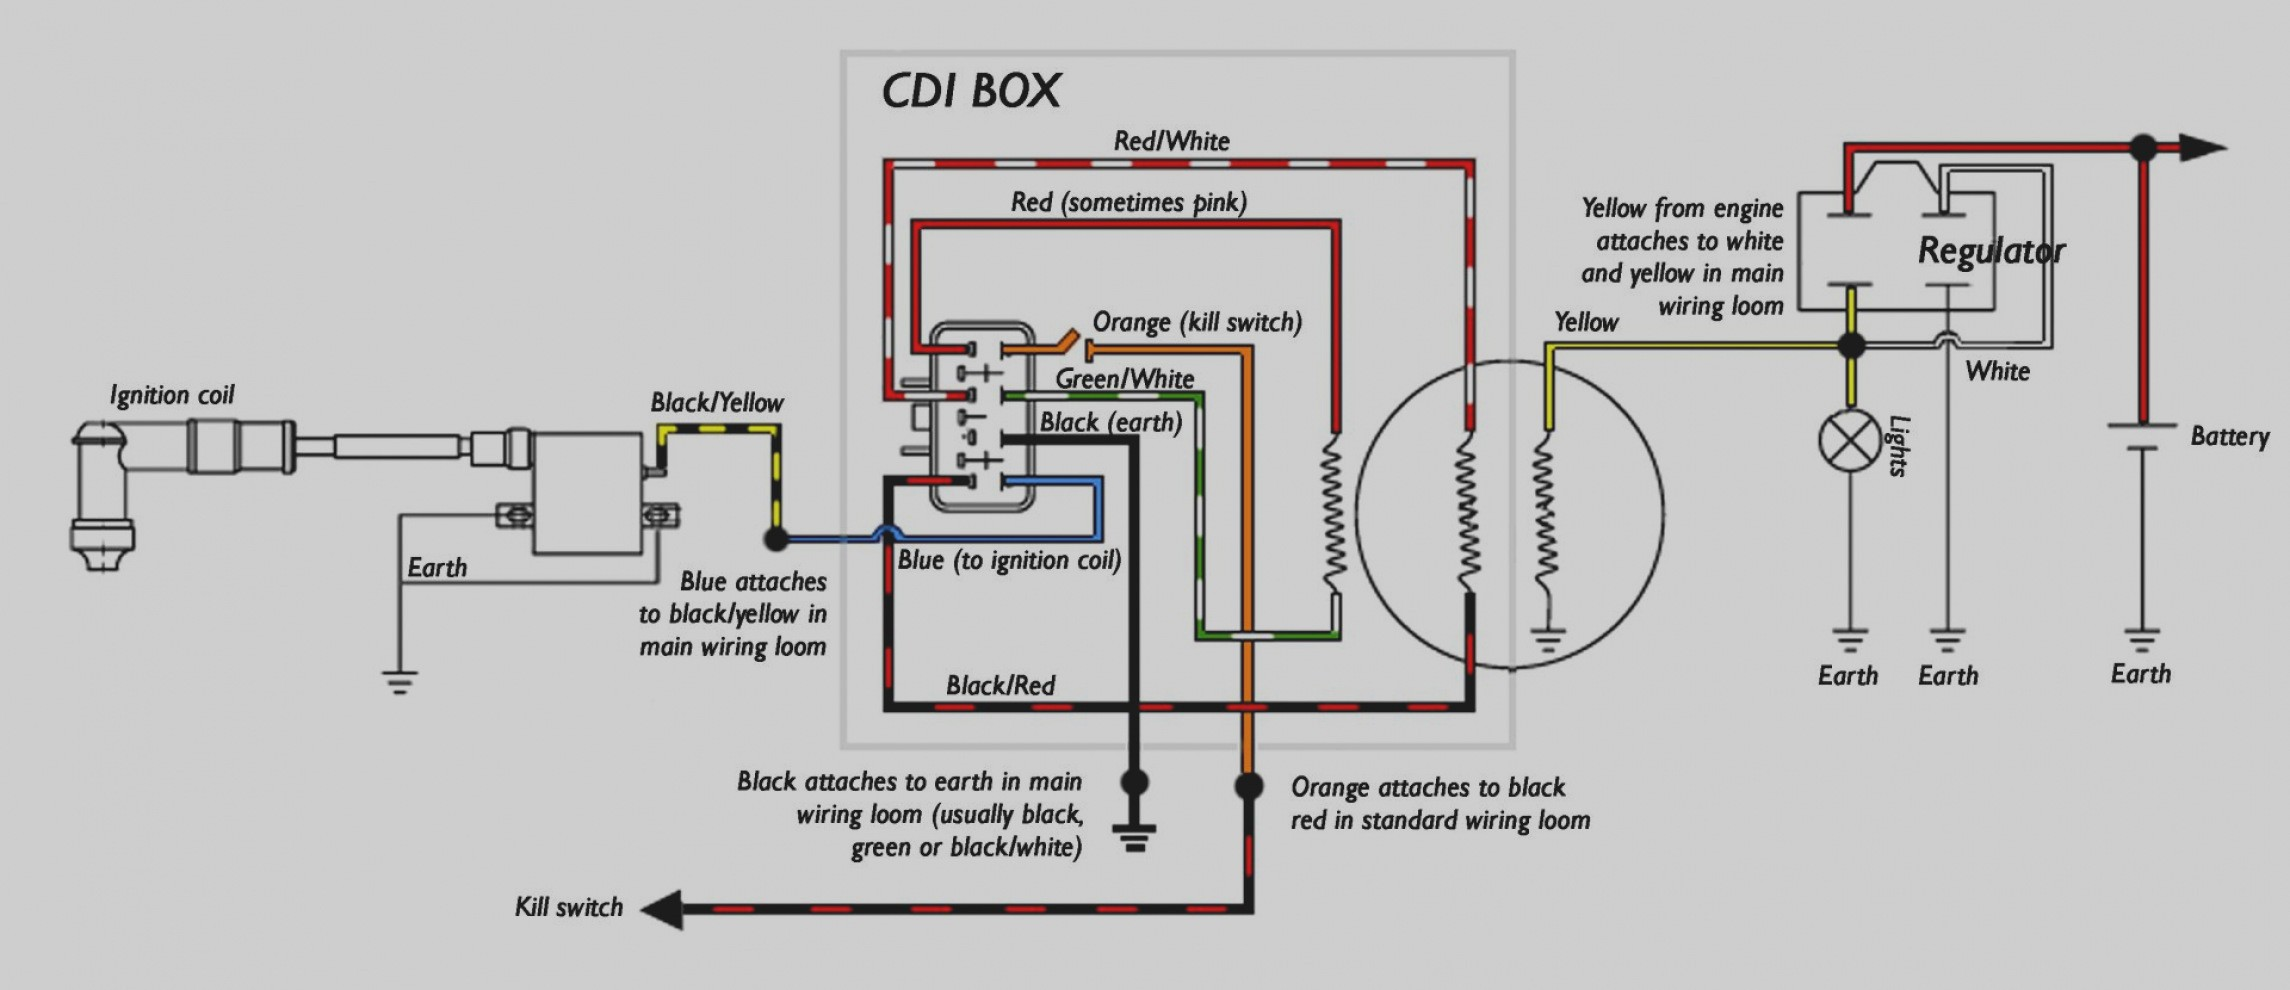 Kandi 250st Quad Wiring Diagram Wiring Diagram - BURKE.MOOSHAK.INDiagram Database - MOOSHAK.IN